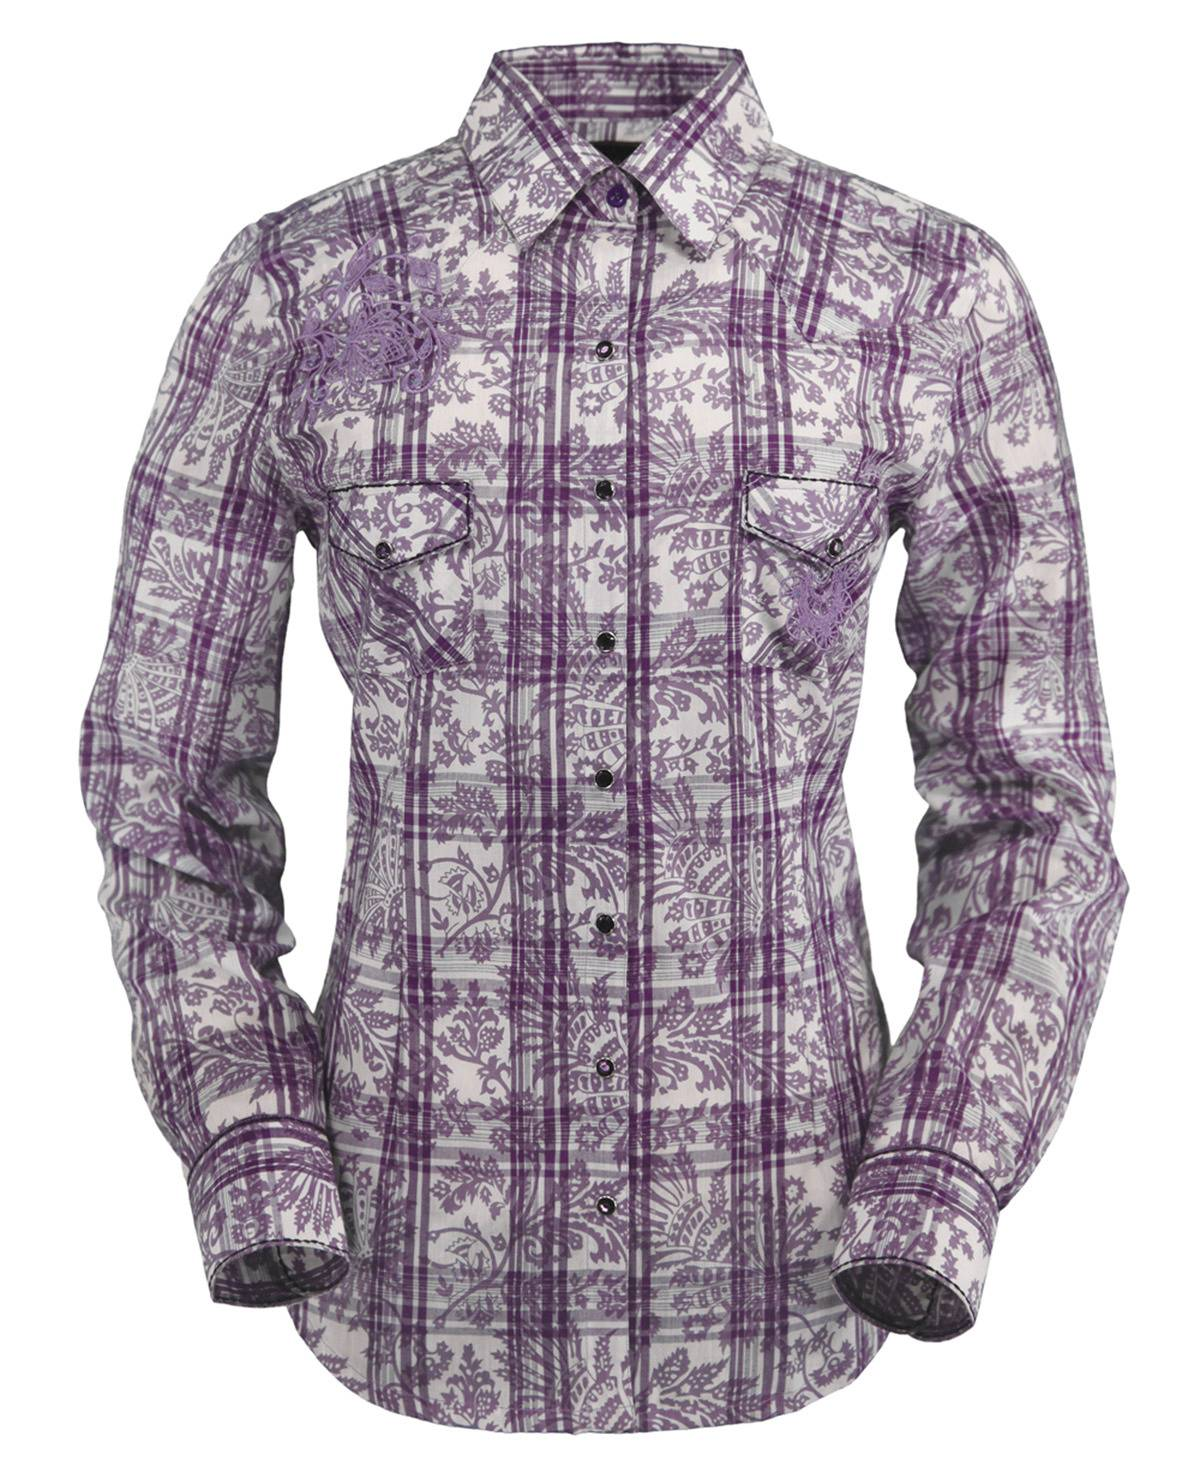 Outback Trading Ladies' Lavender Shirt